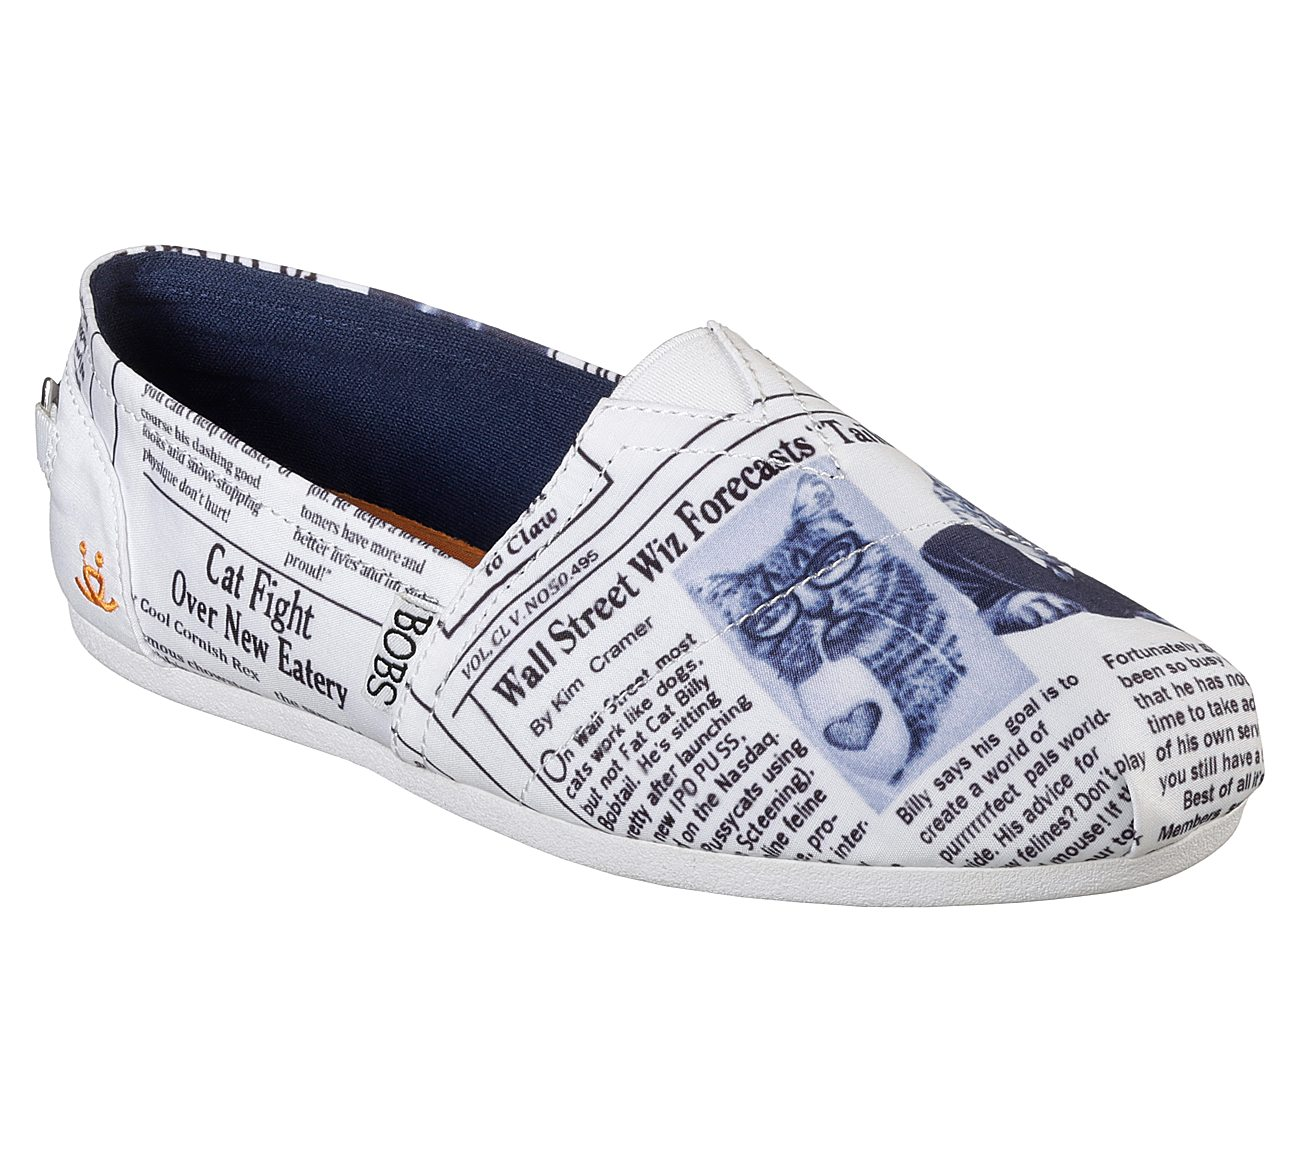 d15558c02b2b Buy SKECHERS BOBS Plush - Cat-Toon BOBS Shoes only  27.00